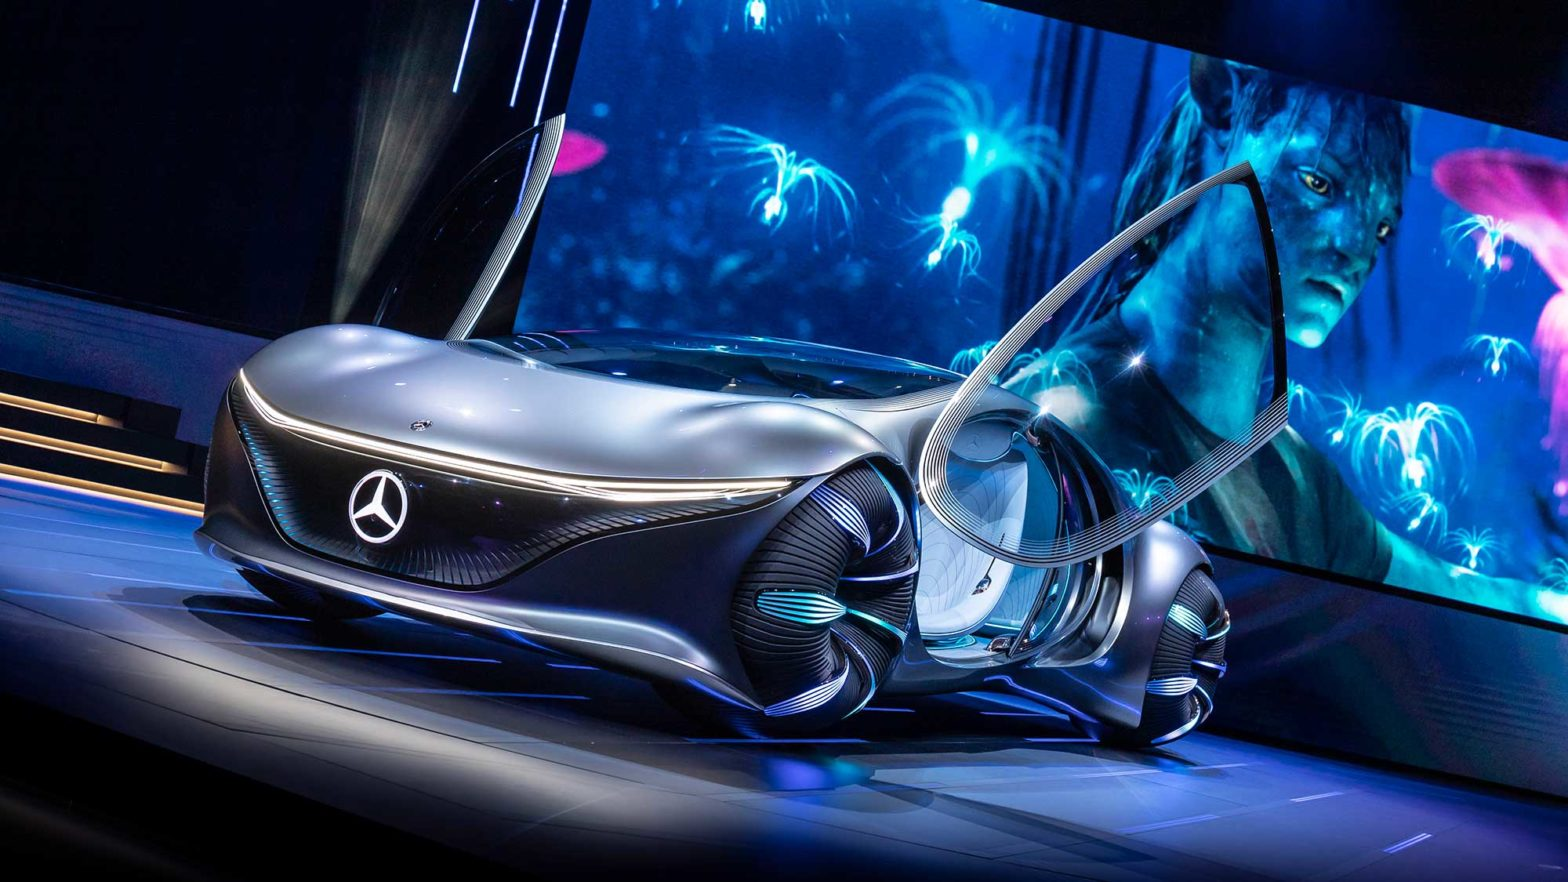 mercedes-benz-vision-avtr-concept-car-featured-image-1568x882.jpg